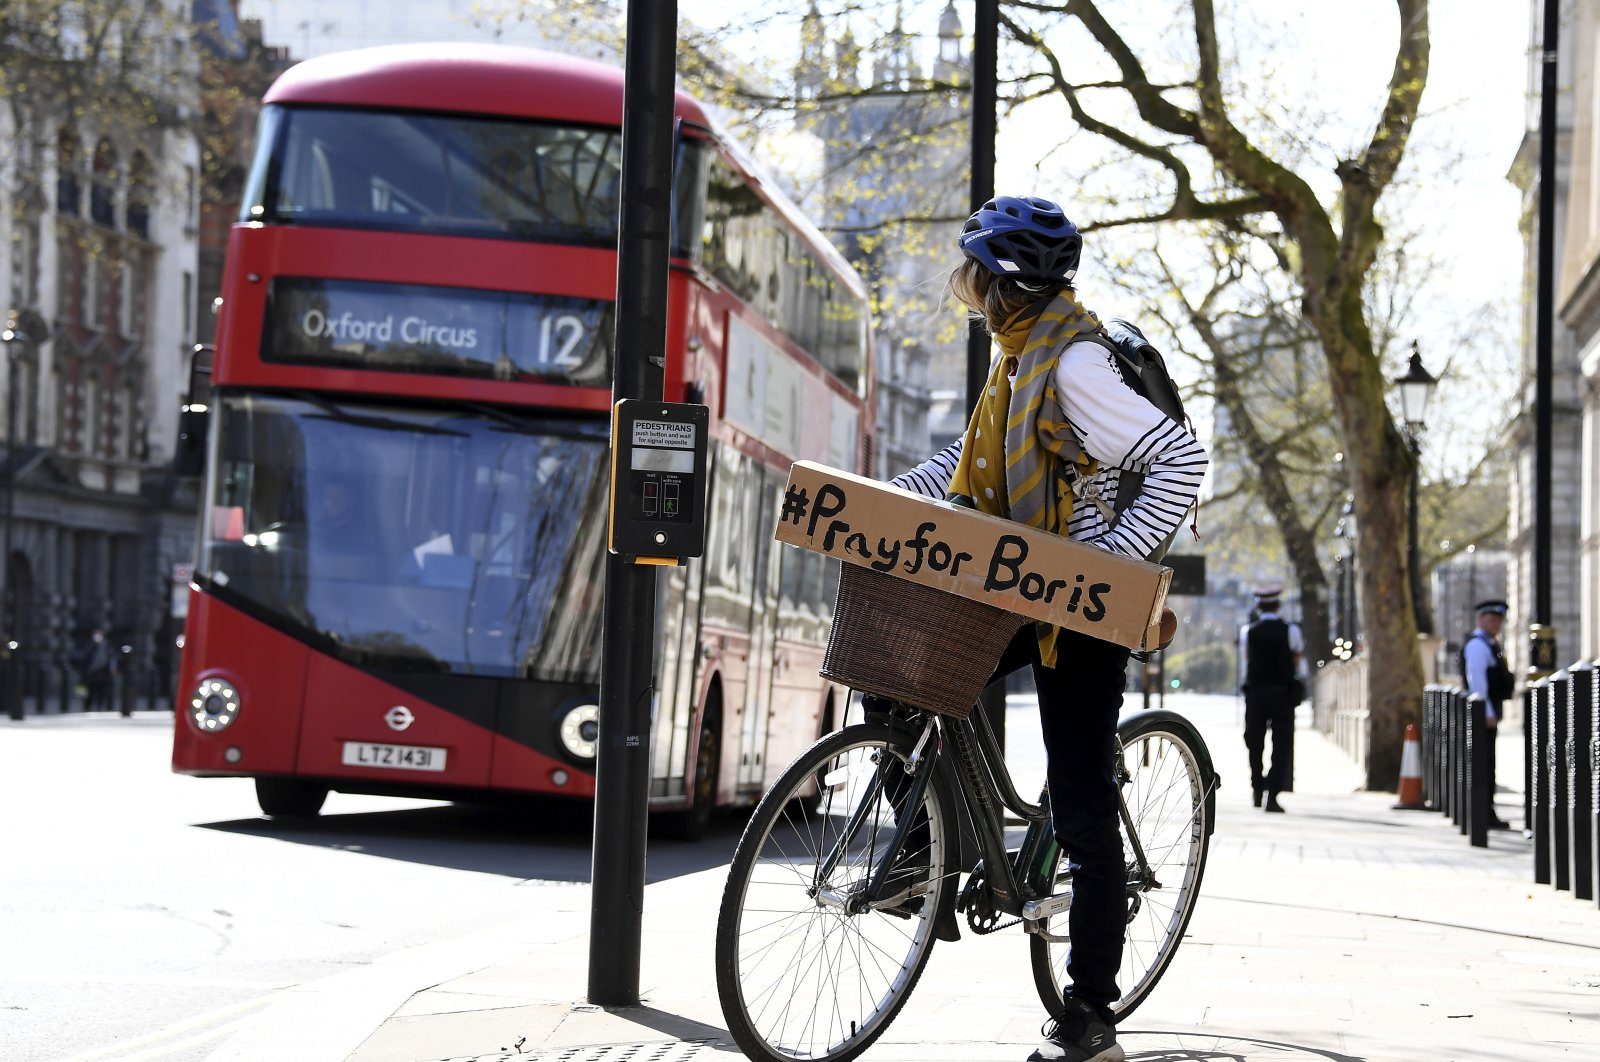 A woman shows a sign on her bicycle as British Prime Minister Boris Johnson is in intensive care fighting the coronavirus in London, Tuesday, April 7, 2020. (AP Photo)